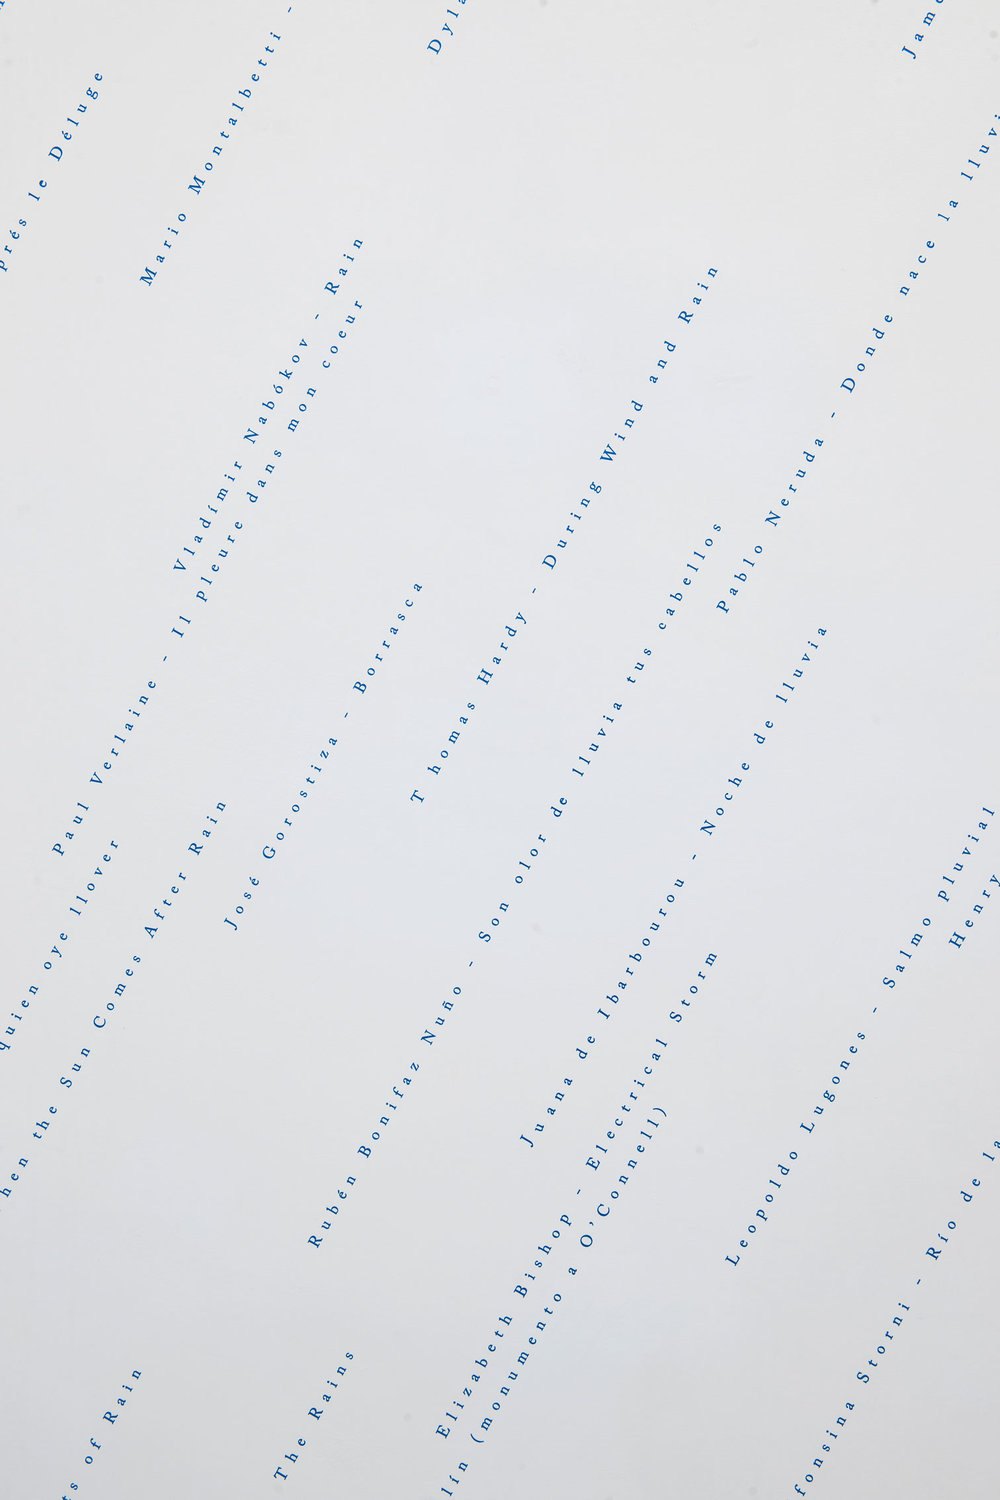 Está lloviendo (una antología) / It's Raining (An Anthology),   2017  Vinil / Vinyl  Dimensiones variables / Dimensions variable  Detalle / Detail